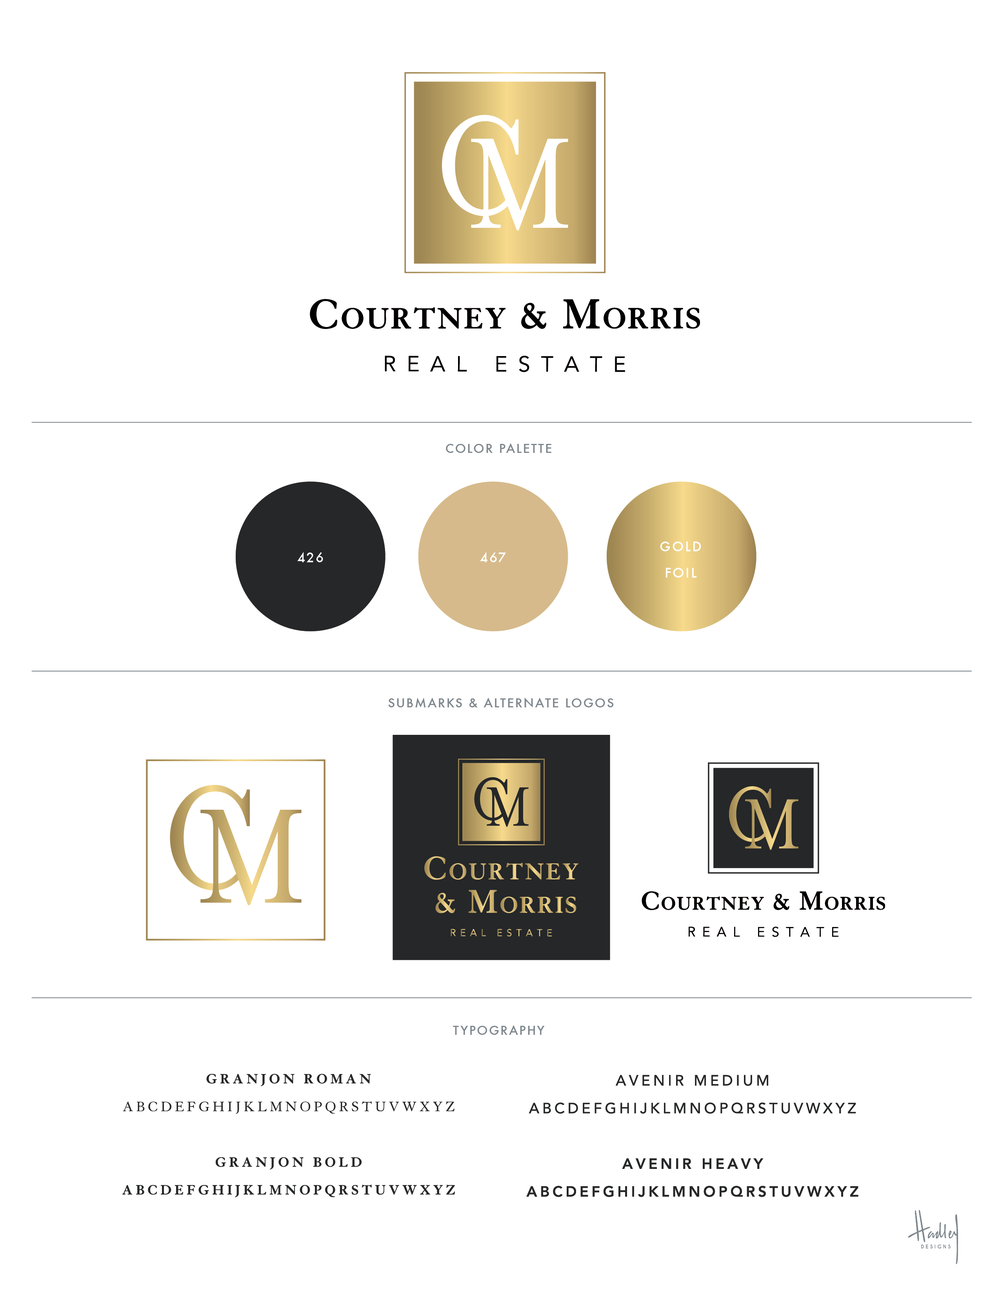 I just finished the new branding for Courtney & Morris Real Estate. They were undergoing some changes and were ready for a new look. View their current website (with old branding) to see the transformation. New website is in the works...